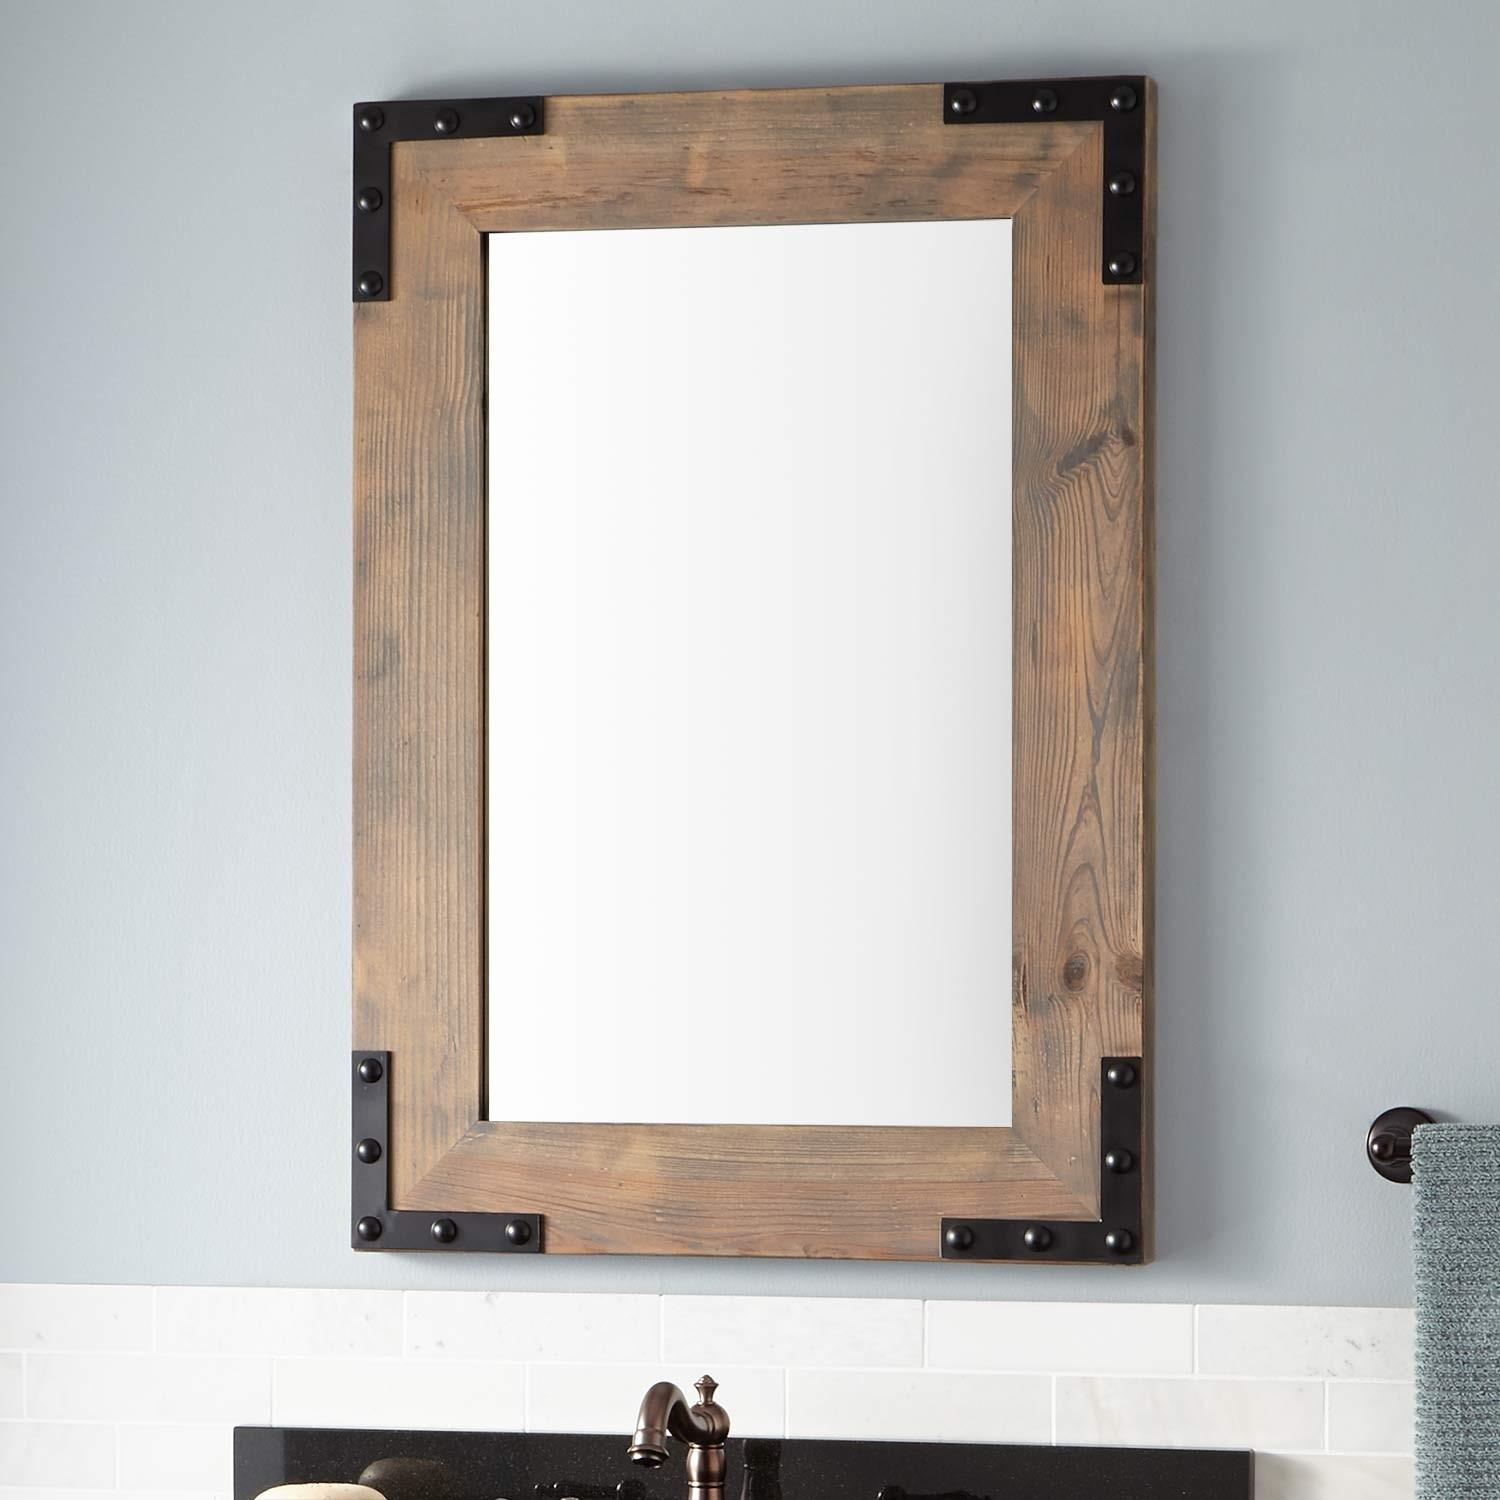 Framed Bathroom Mirrors | Signature Hardware Within Natural Wood Framed Mirrors (Image 8 of 20)